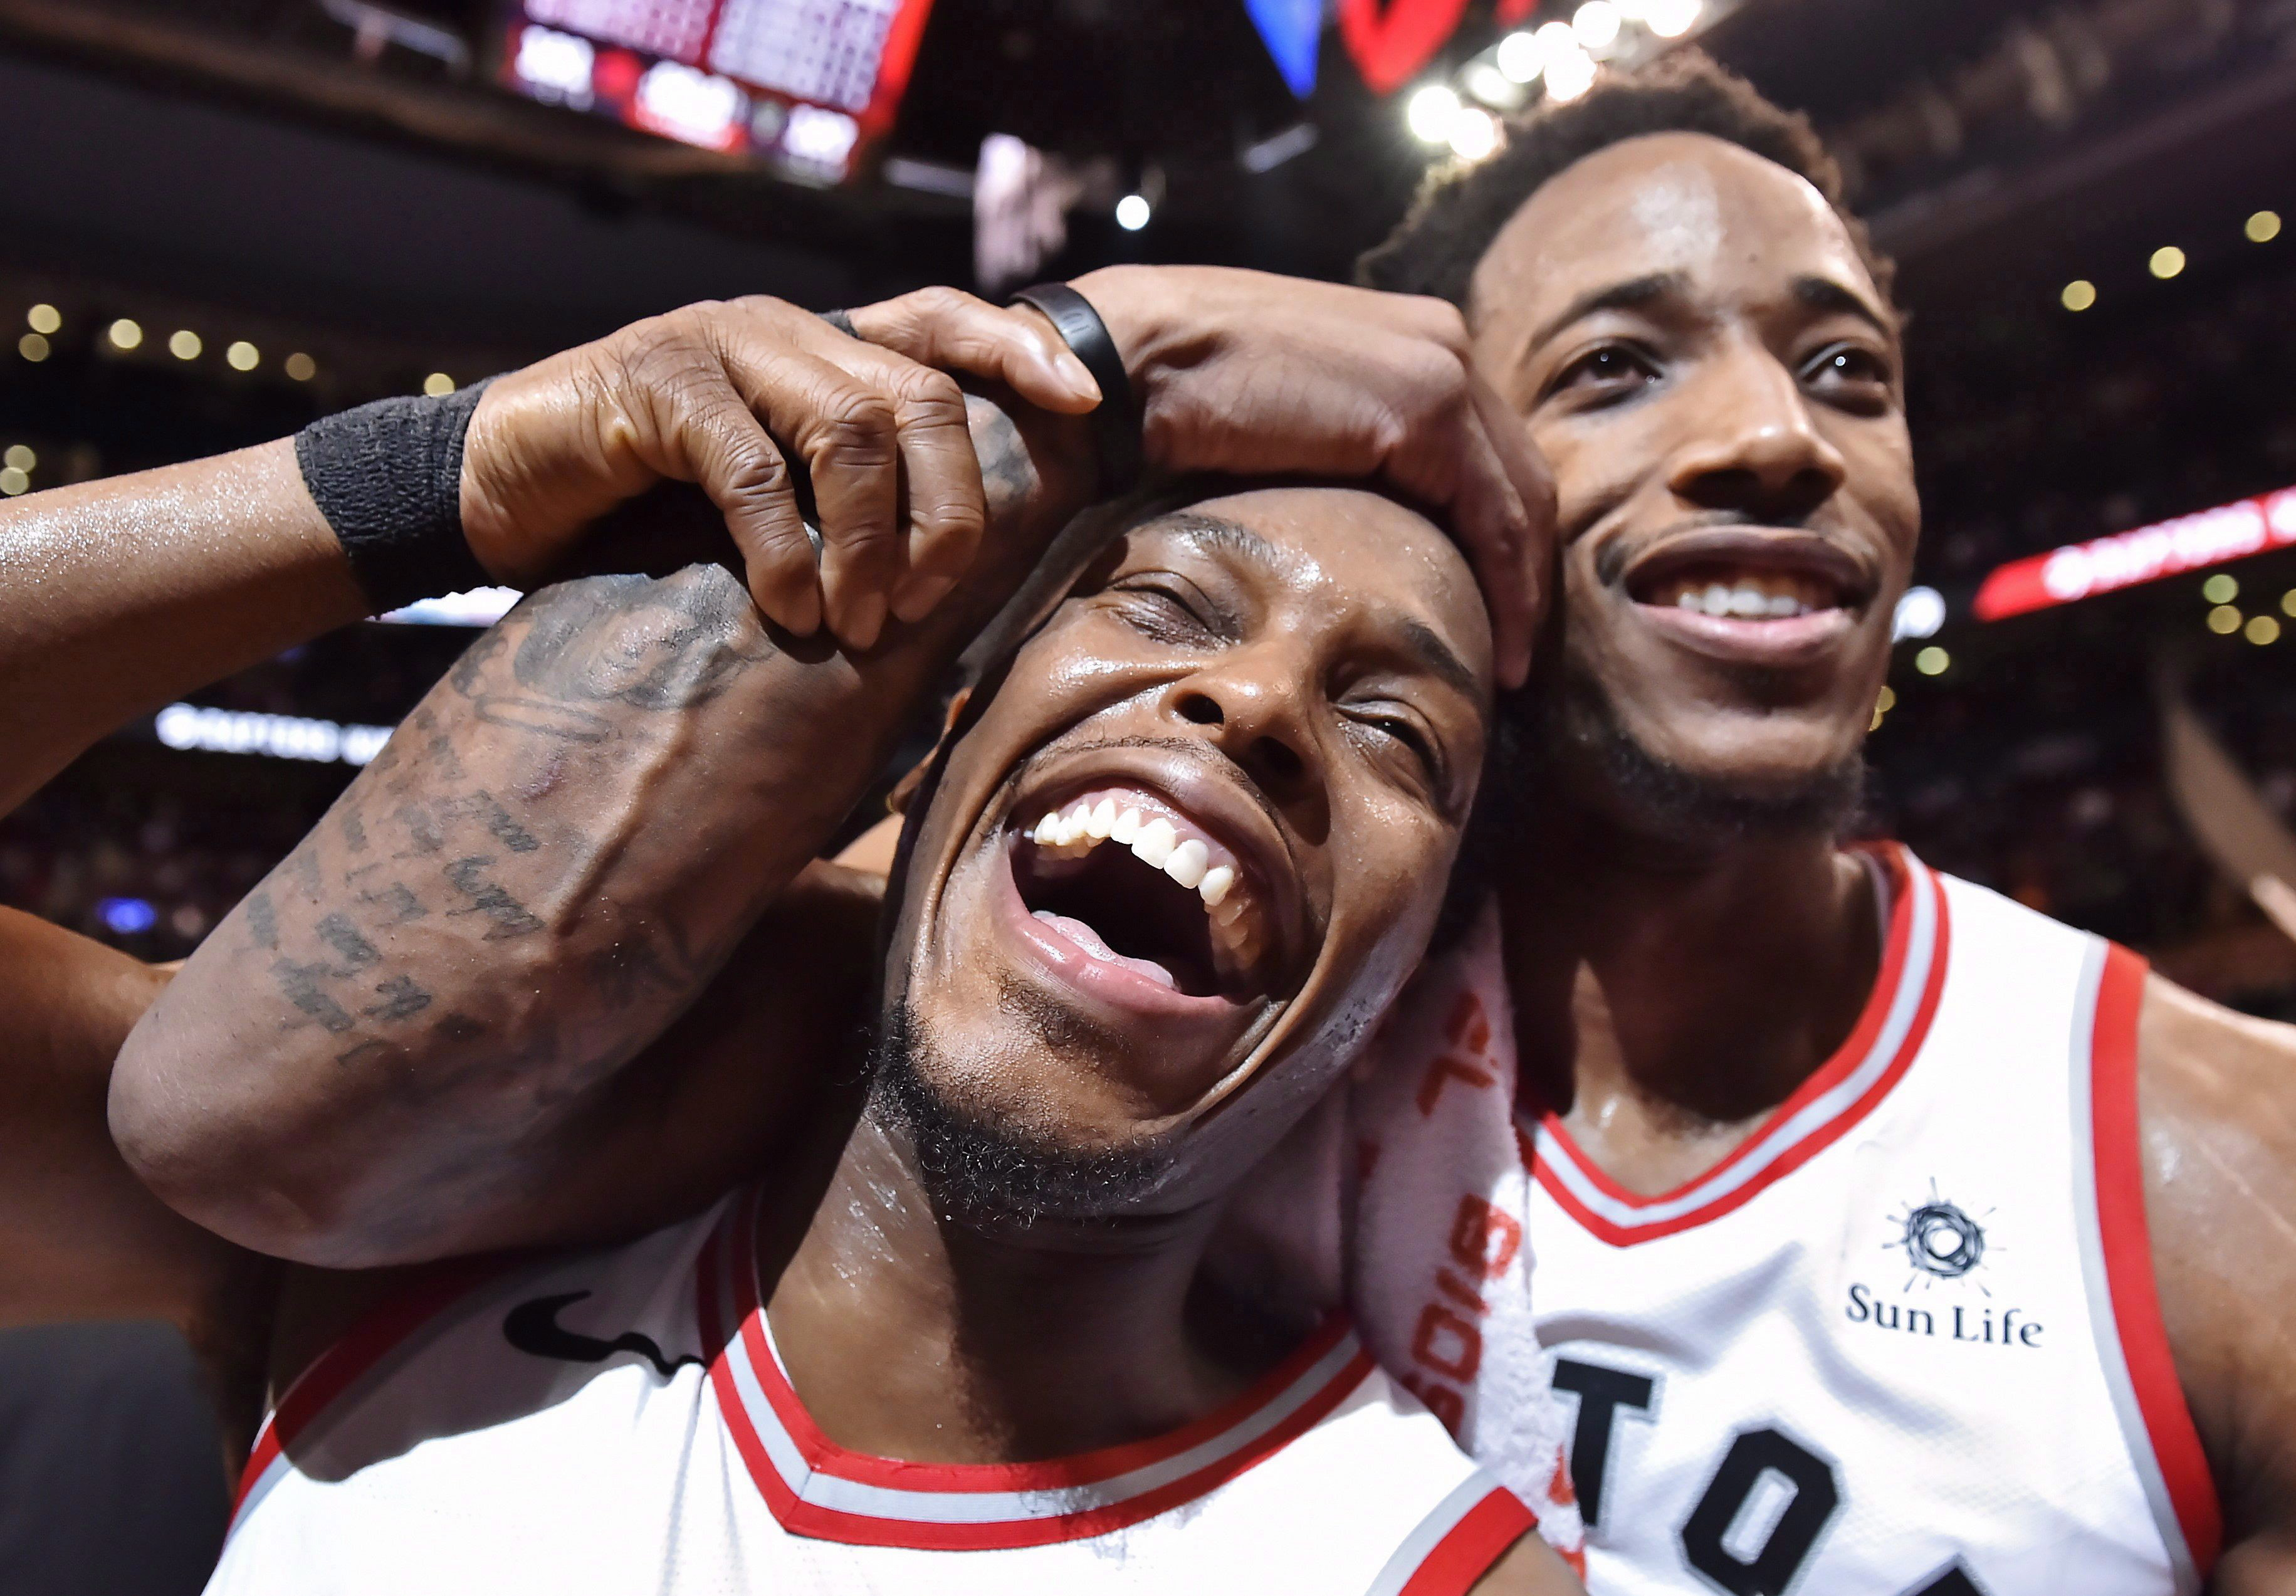 buy online 5d656 b50e8 I don't really like him:' Lowry's friendship with DeRozan ...